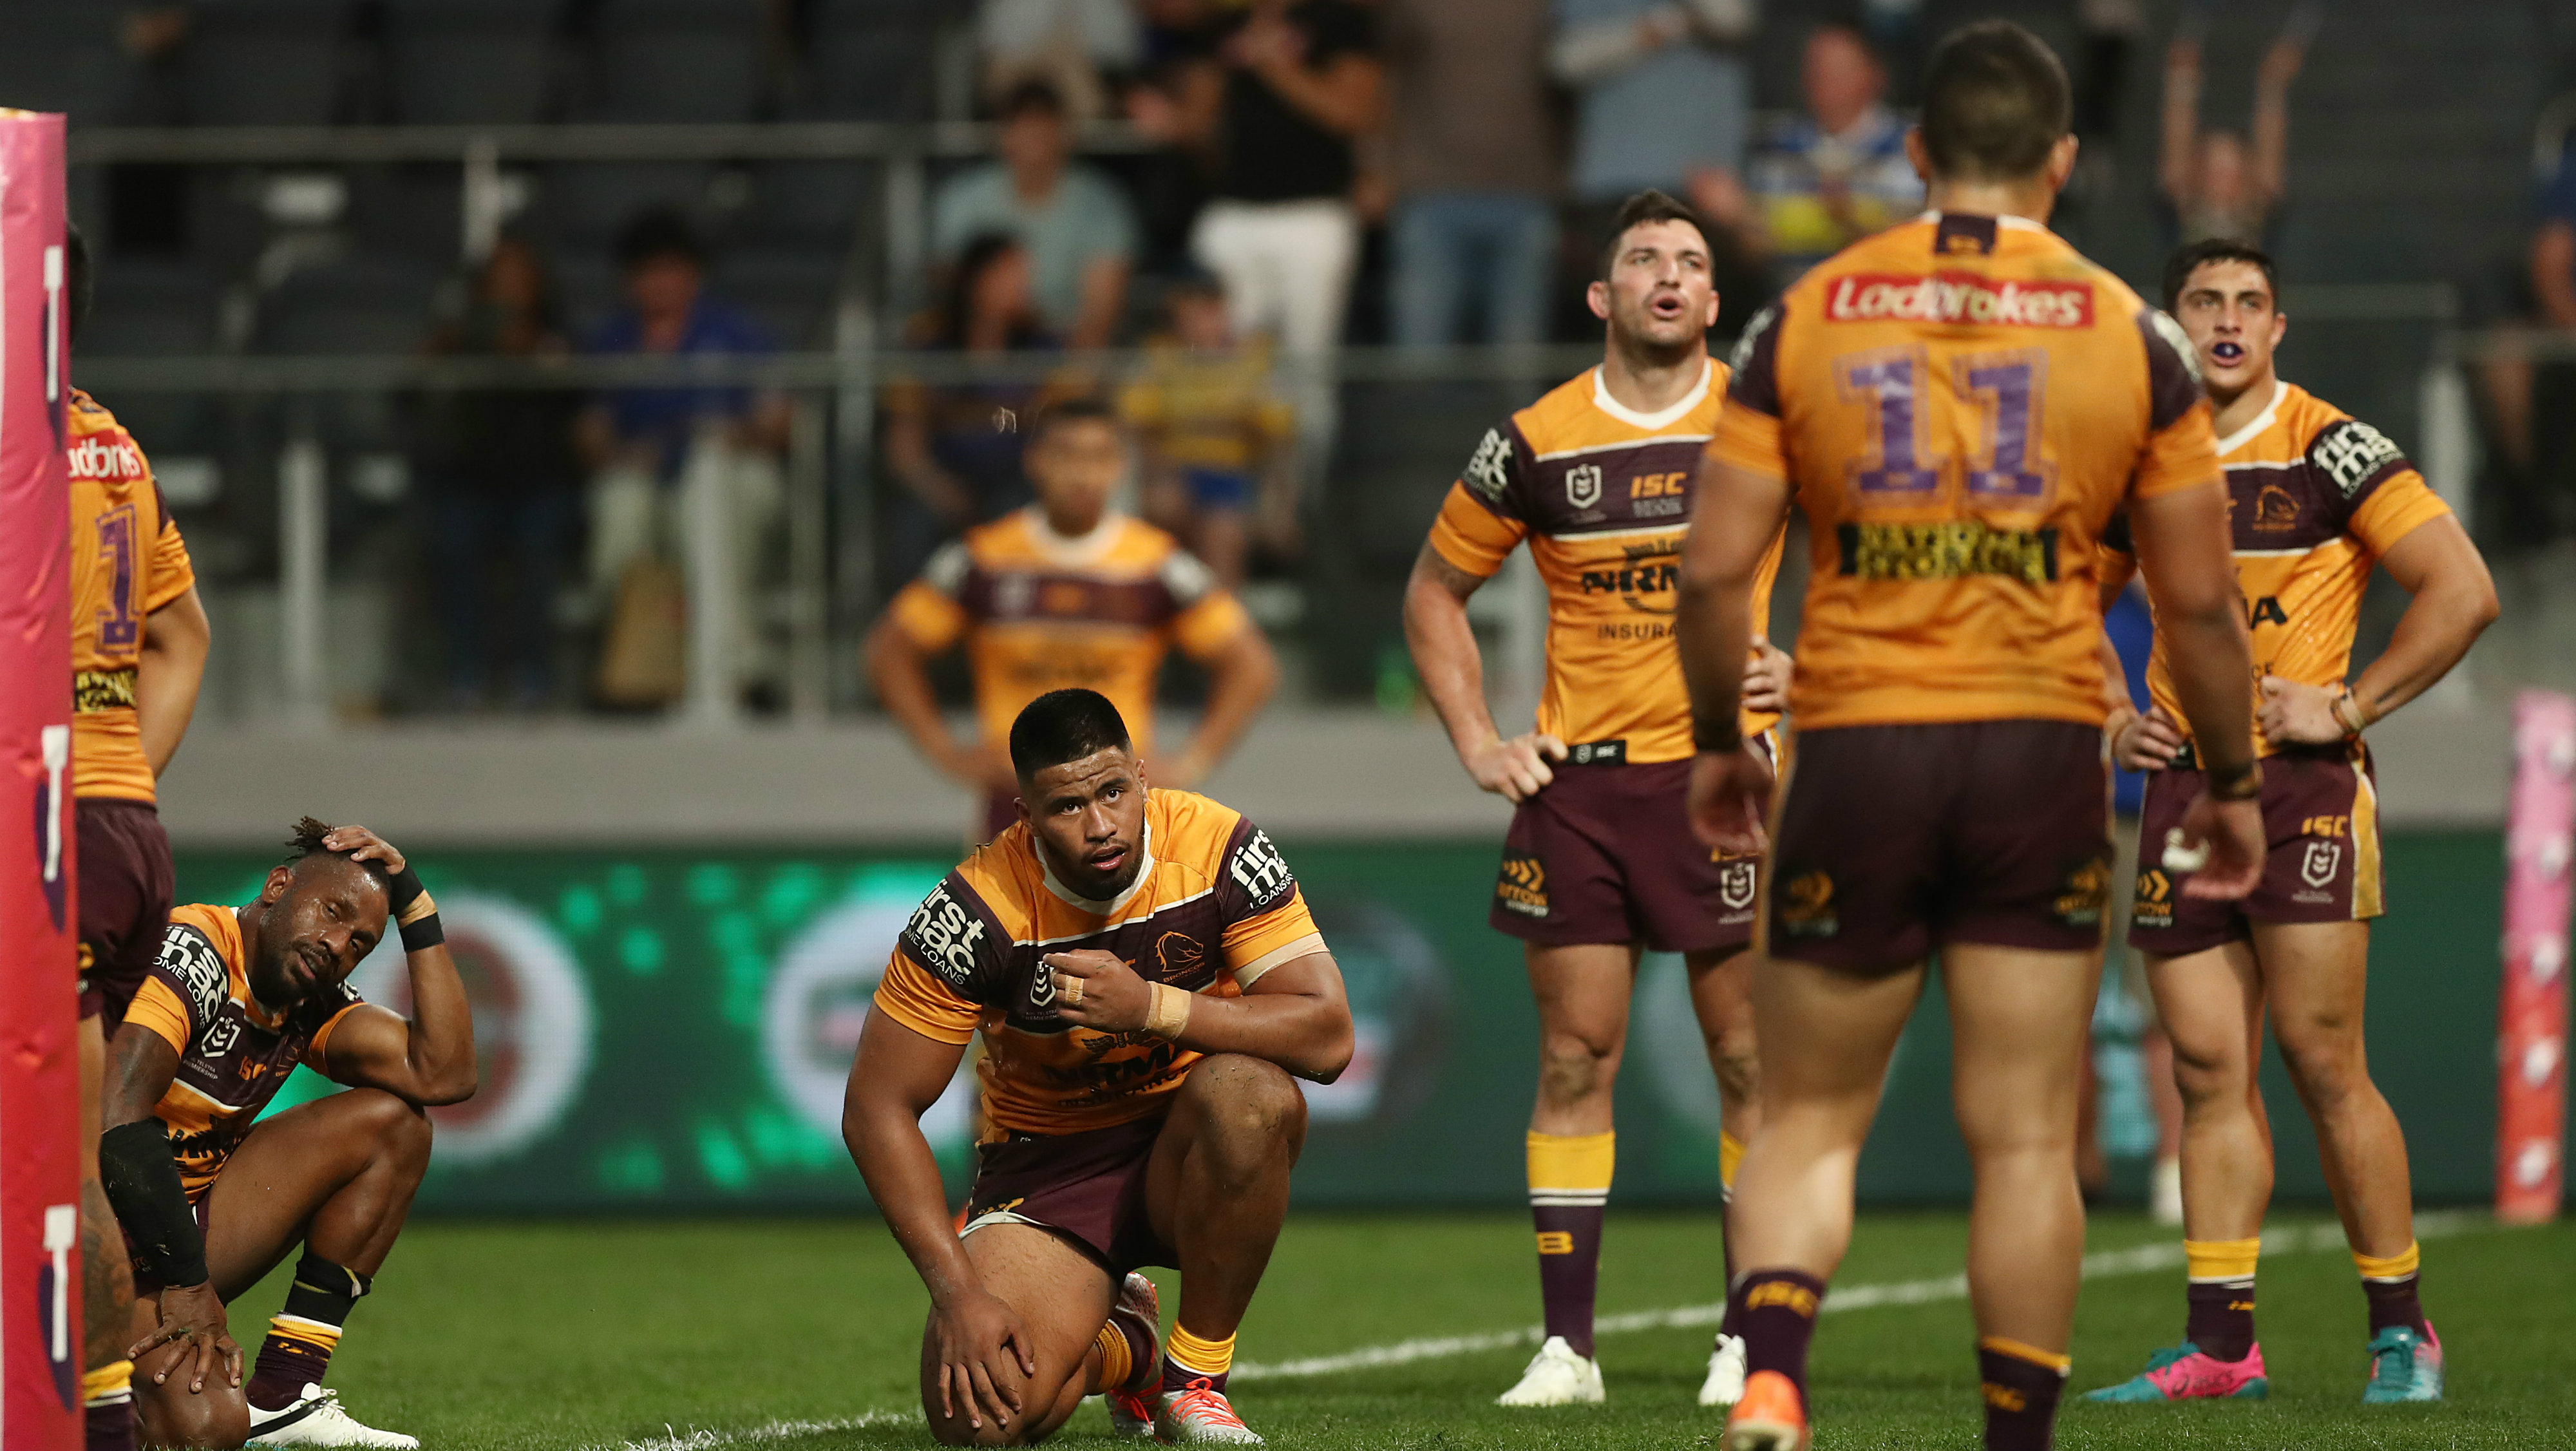 Brisbane Broncos: Phil Gould weighs in on pre-game pokie session